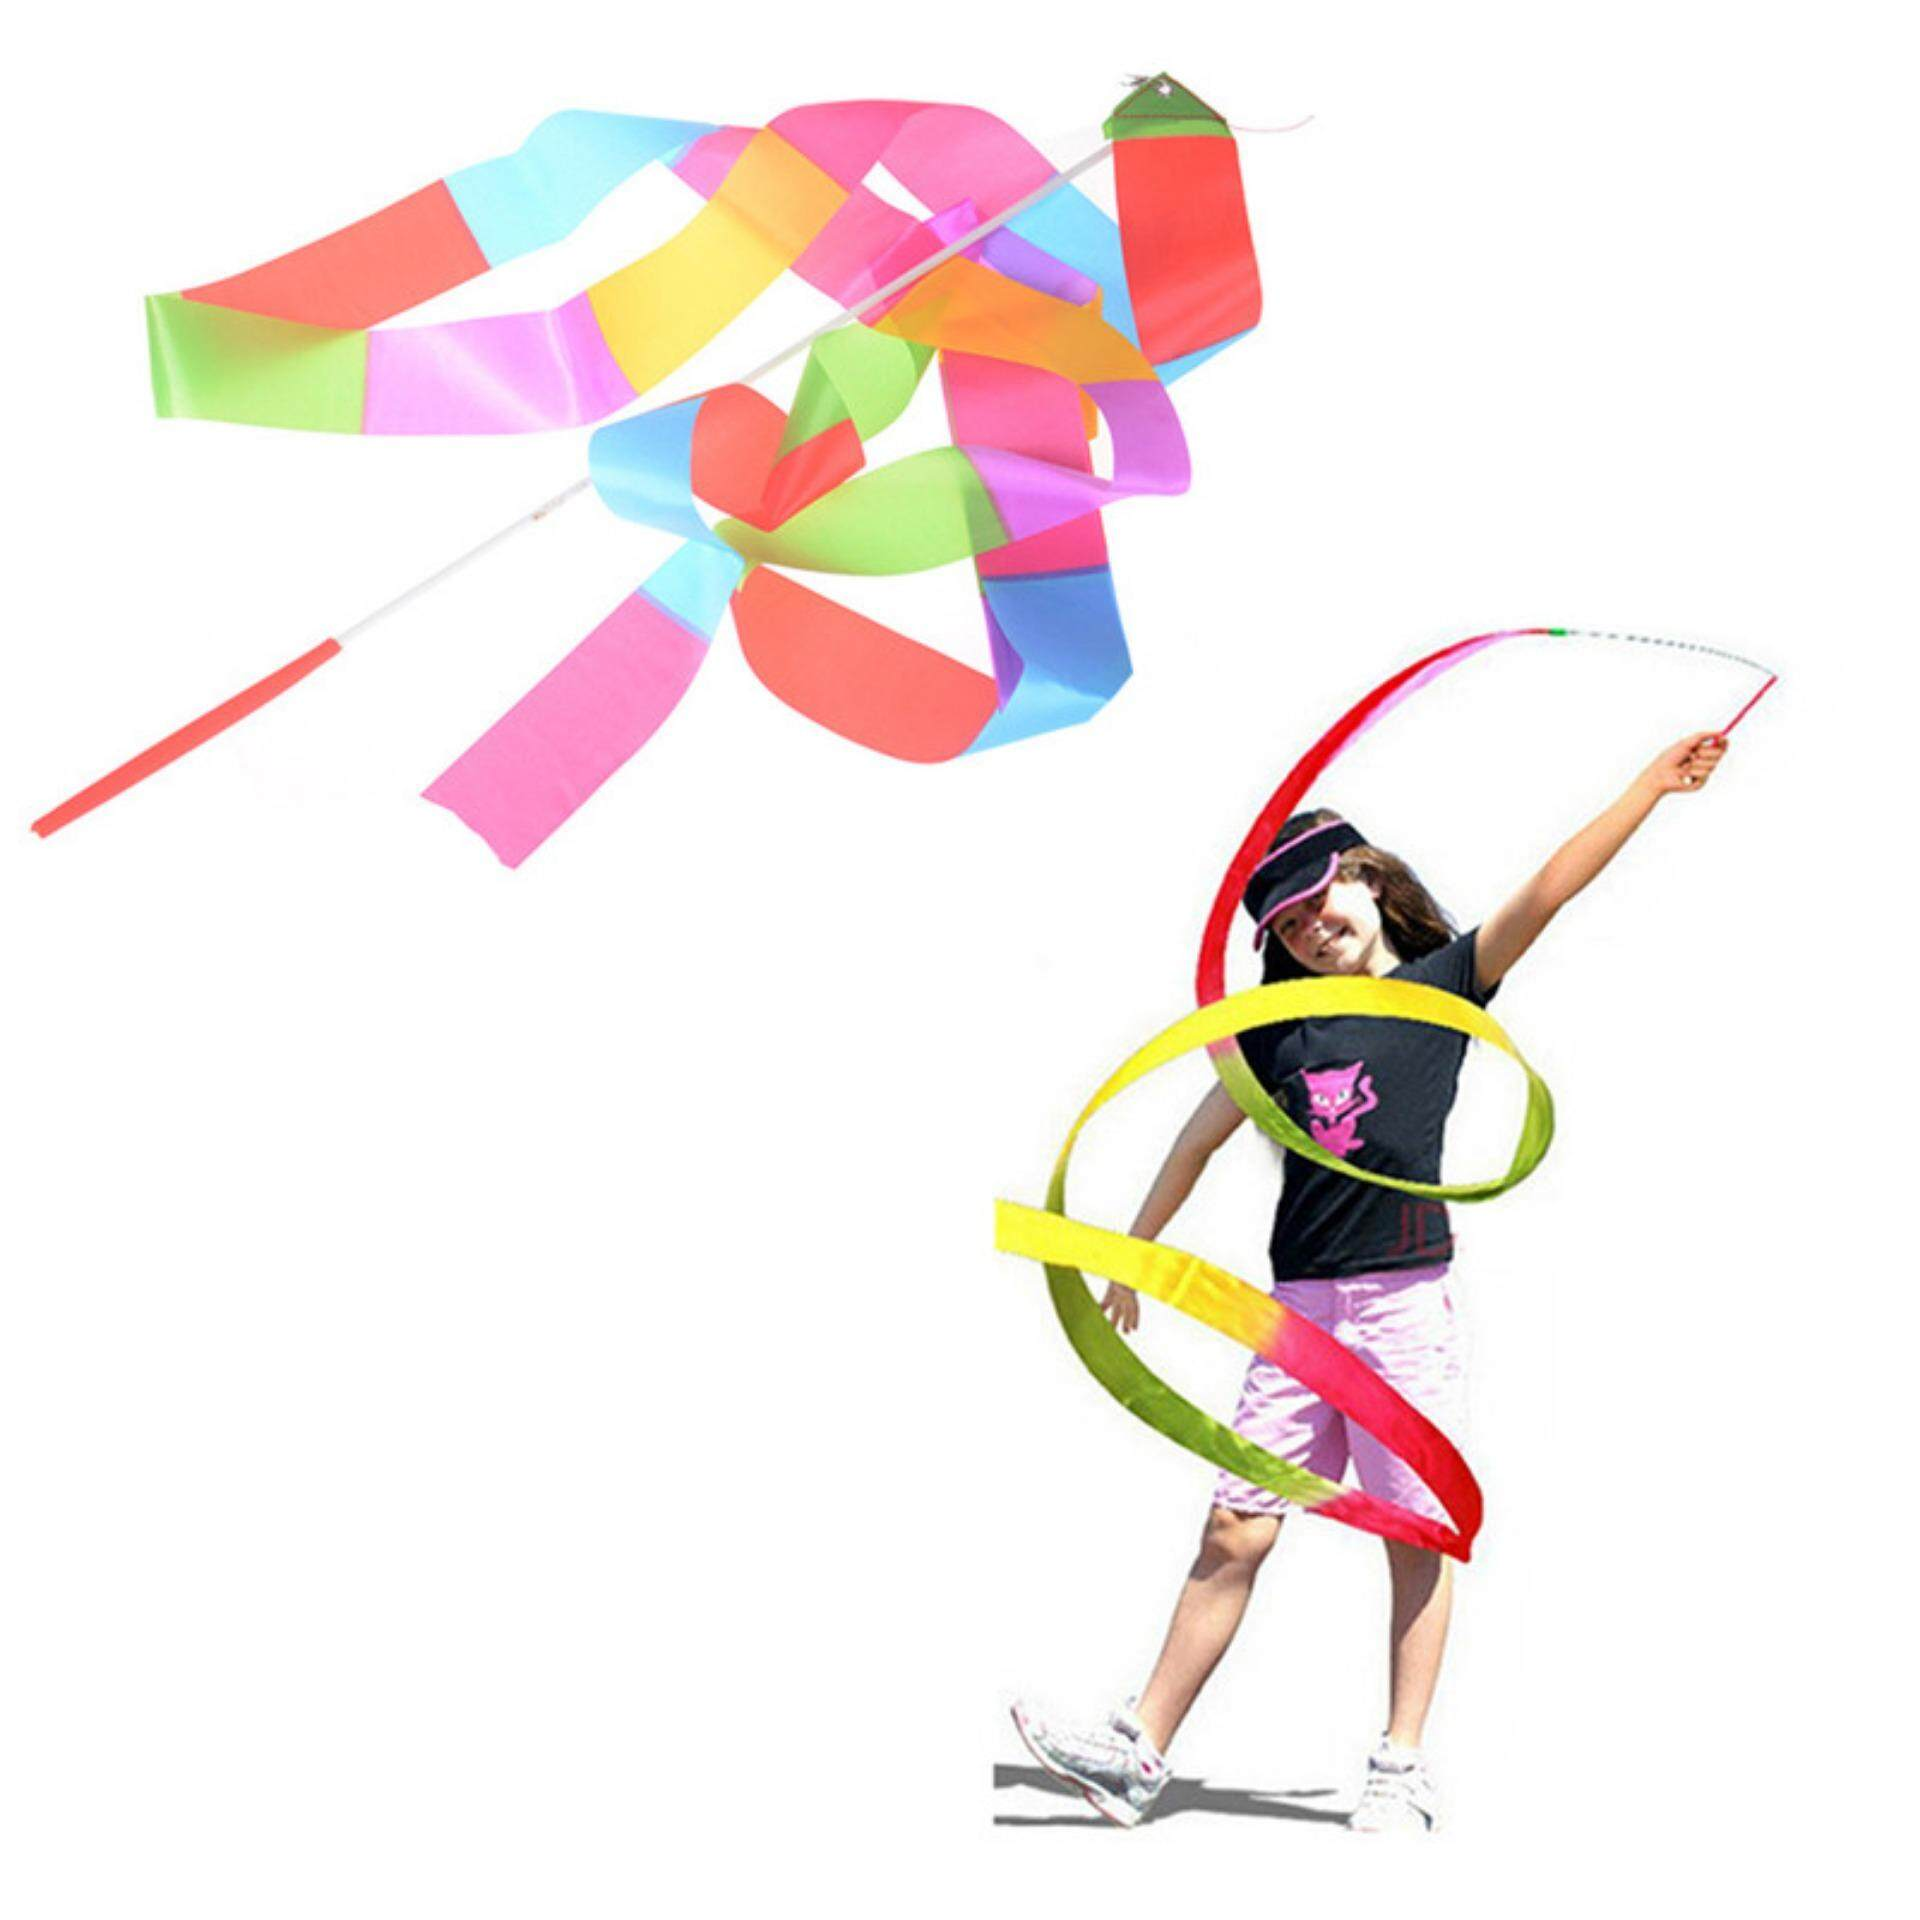 Mecola Popular Colorful 4m Ribbon Gymnastics Dance Dancer Toy Kid Game Sport Toy By Mecola.